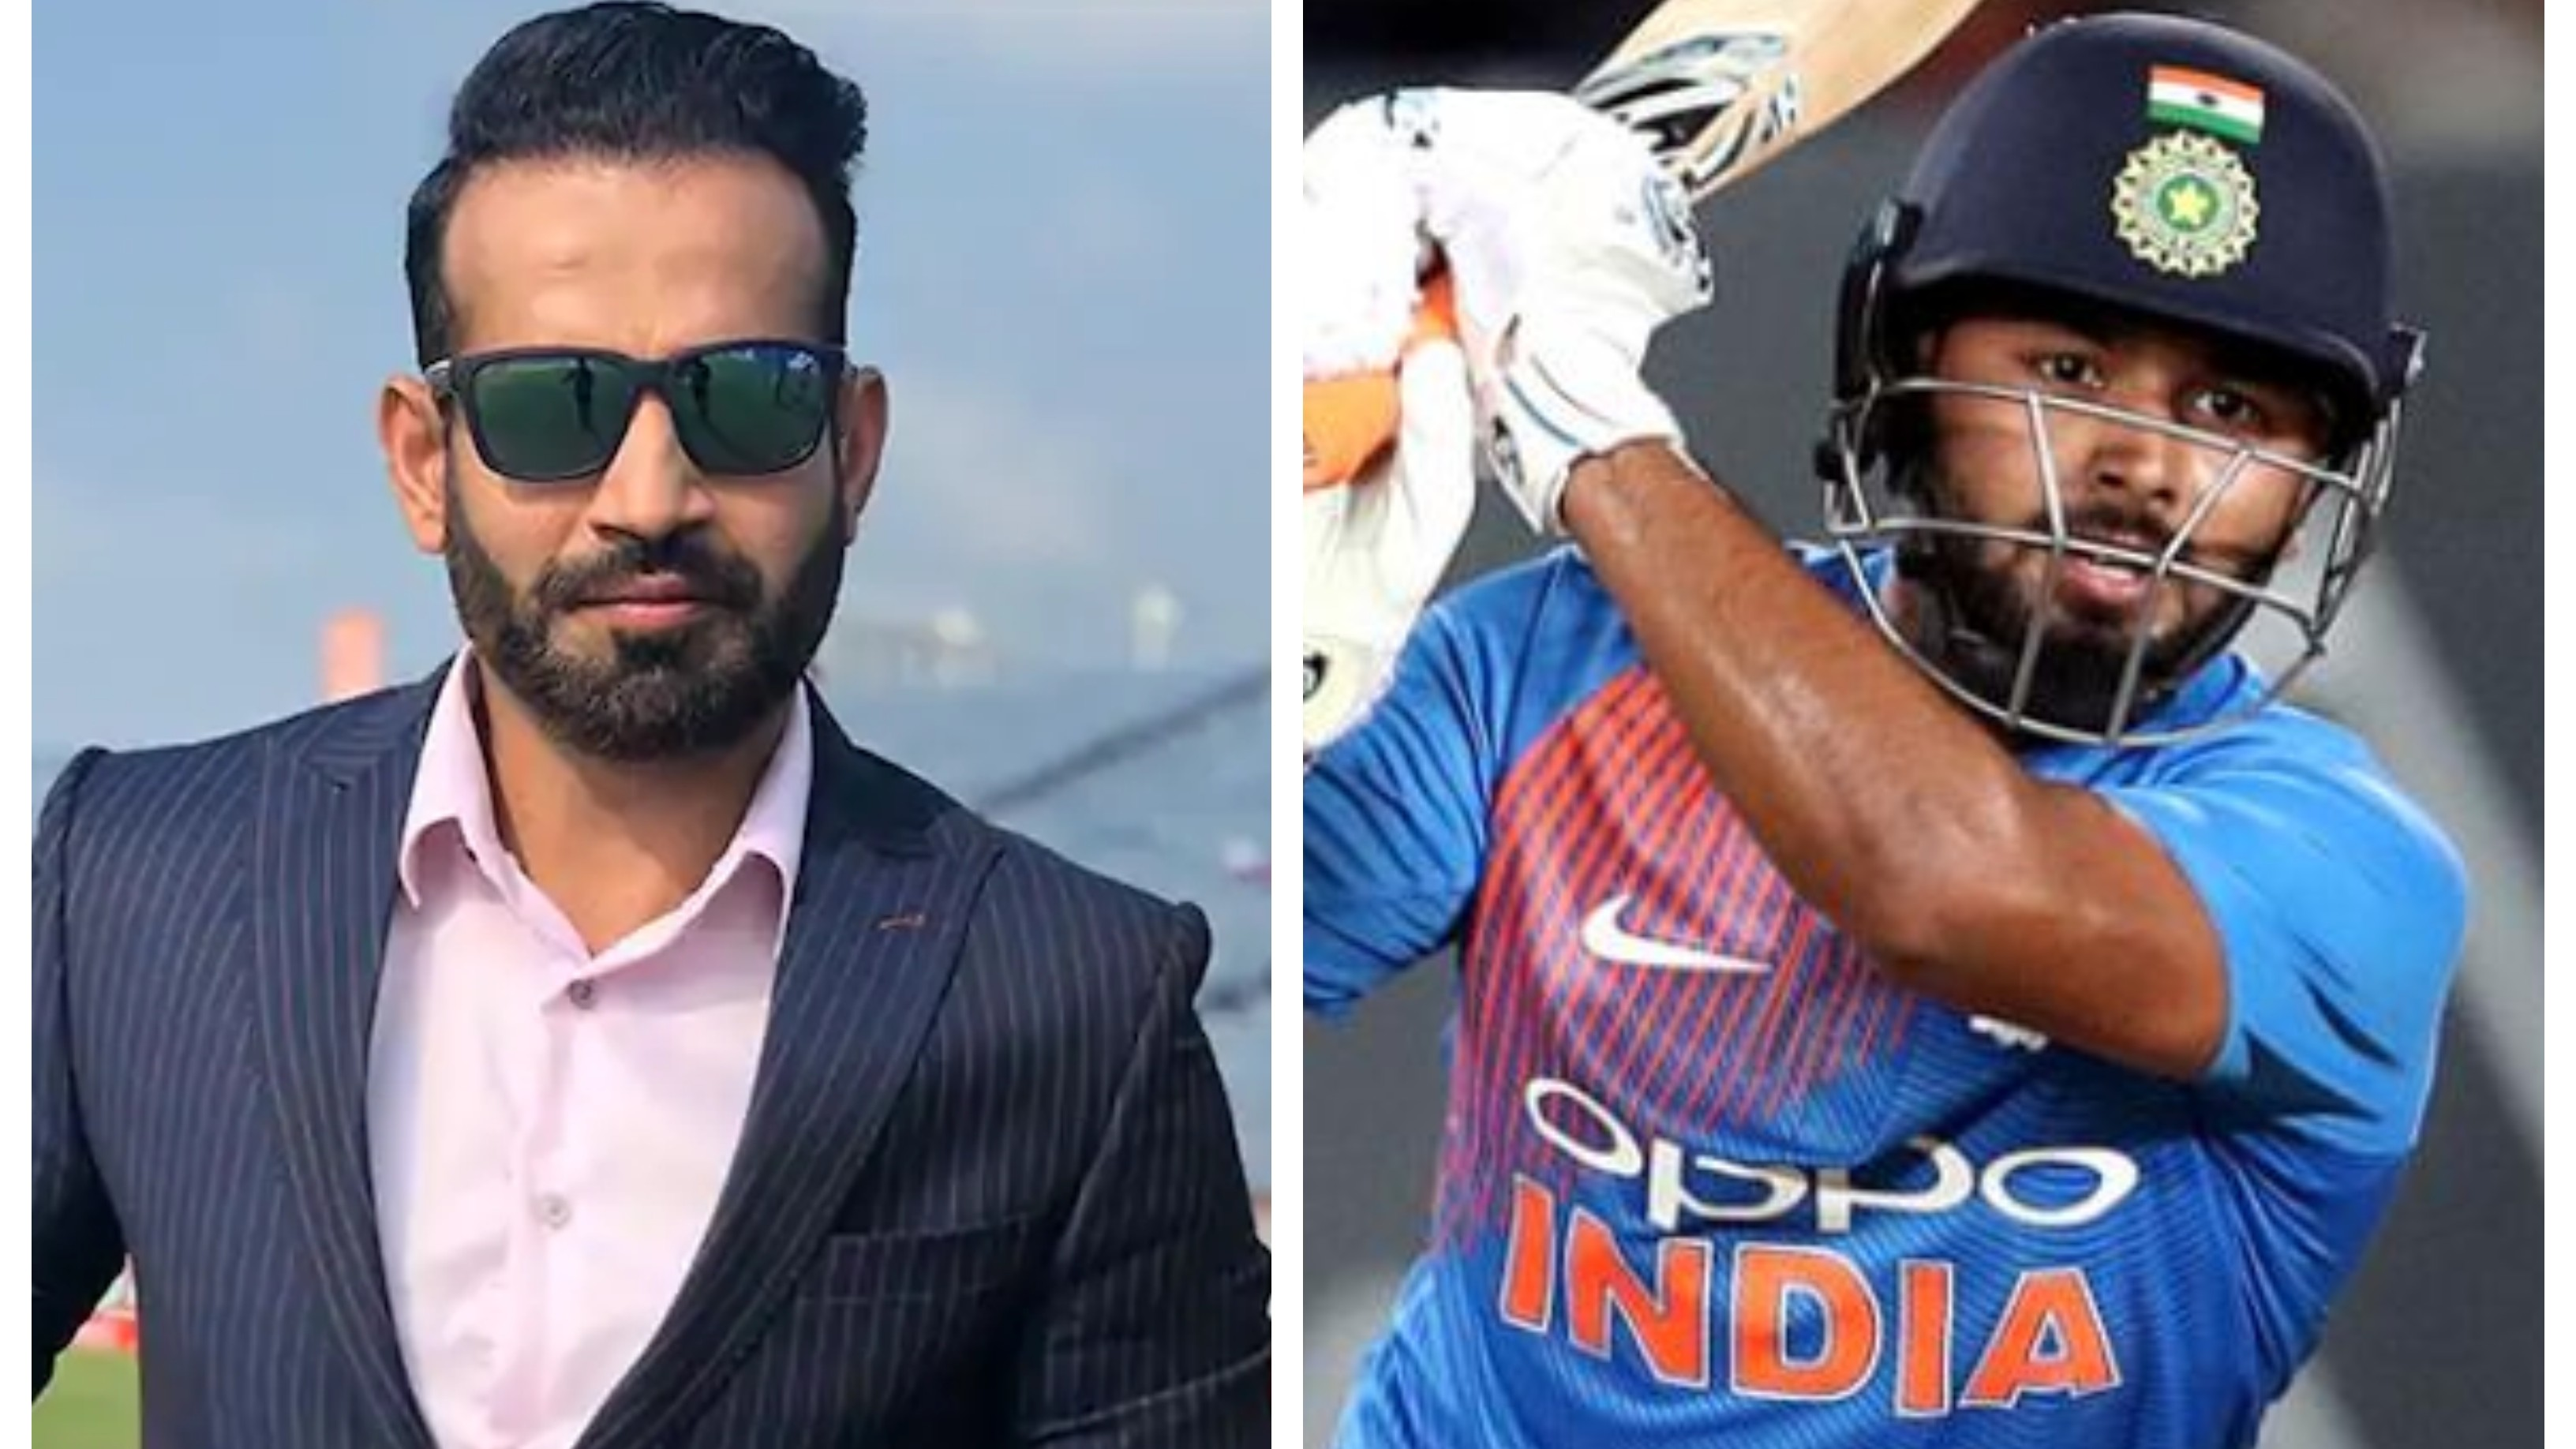 Irfan Pathan feels Rishabh Pant needs 'a little kick on the back' to get going